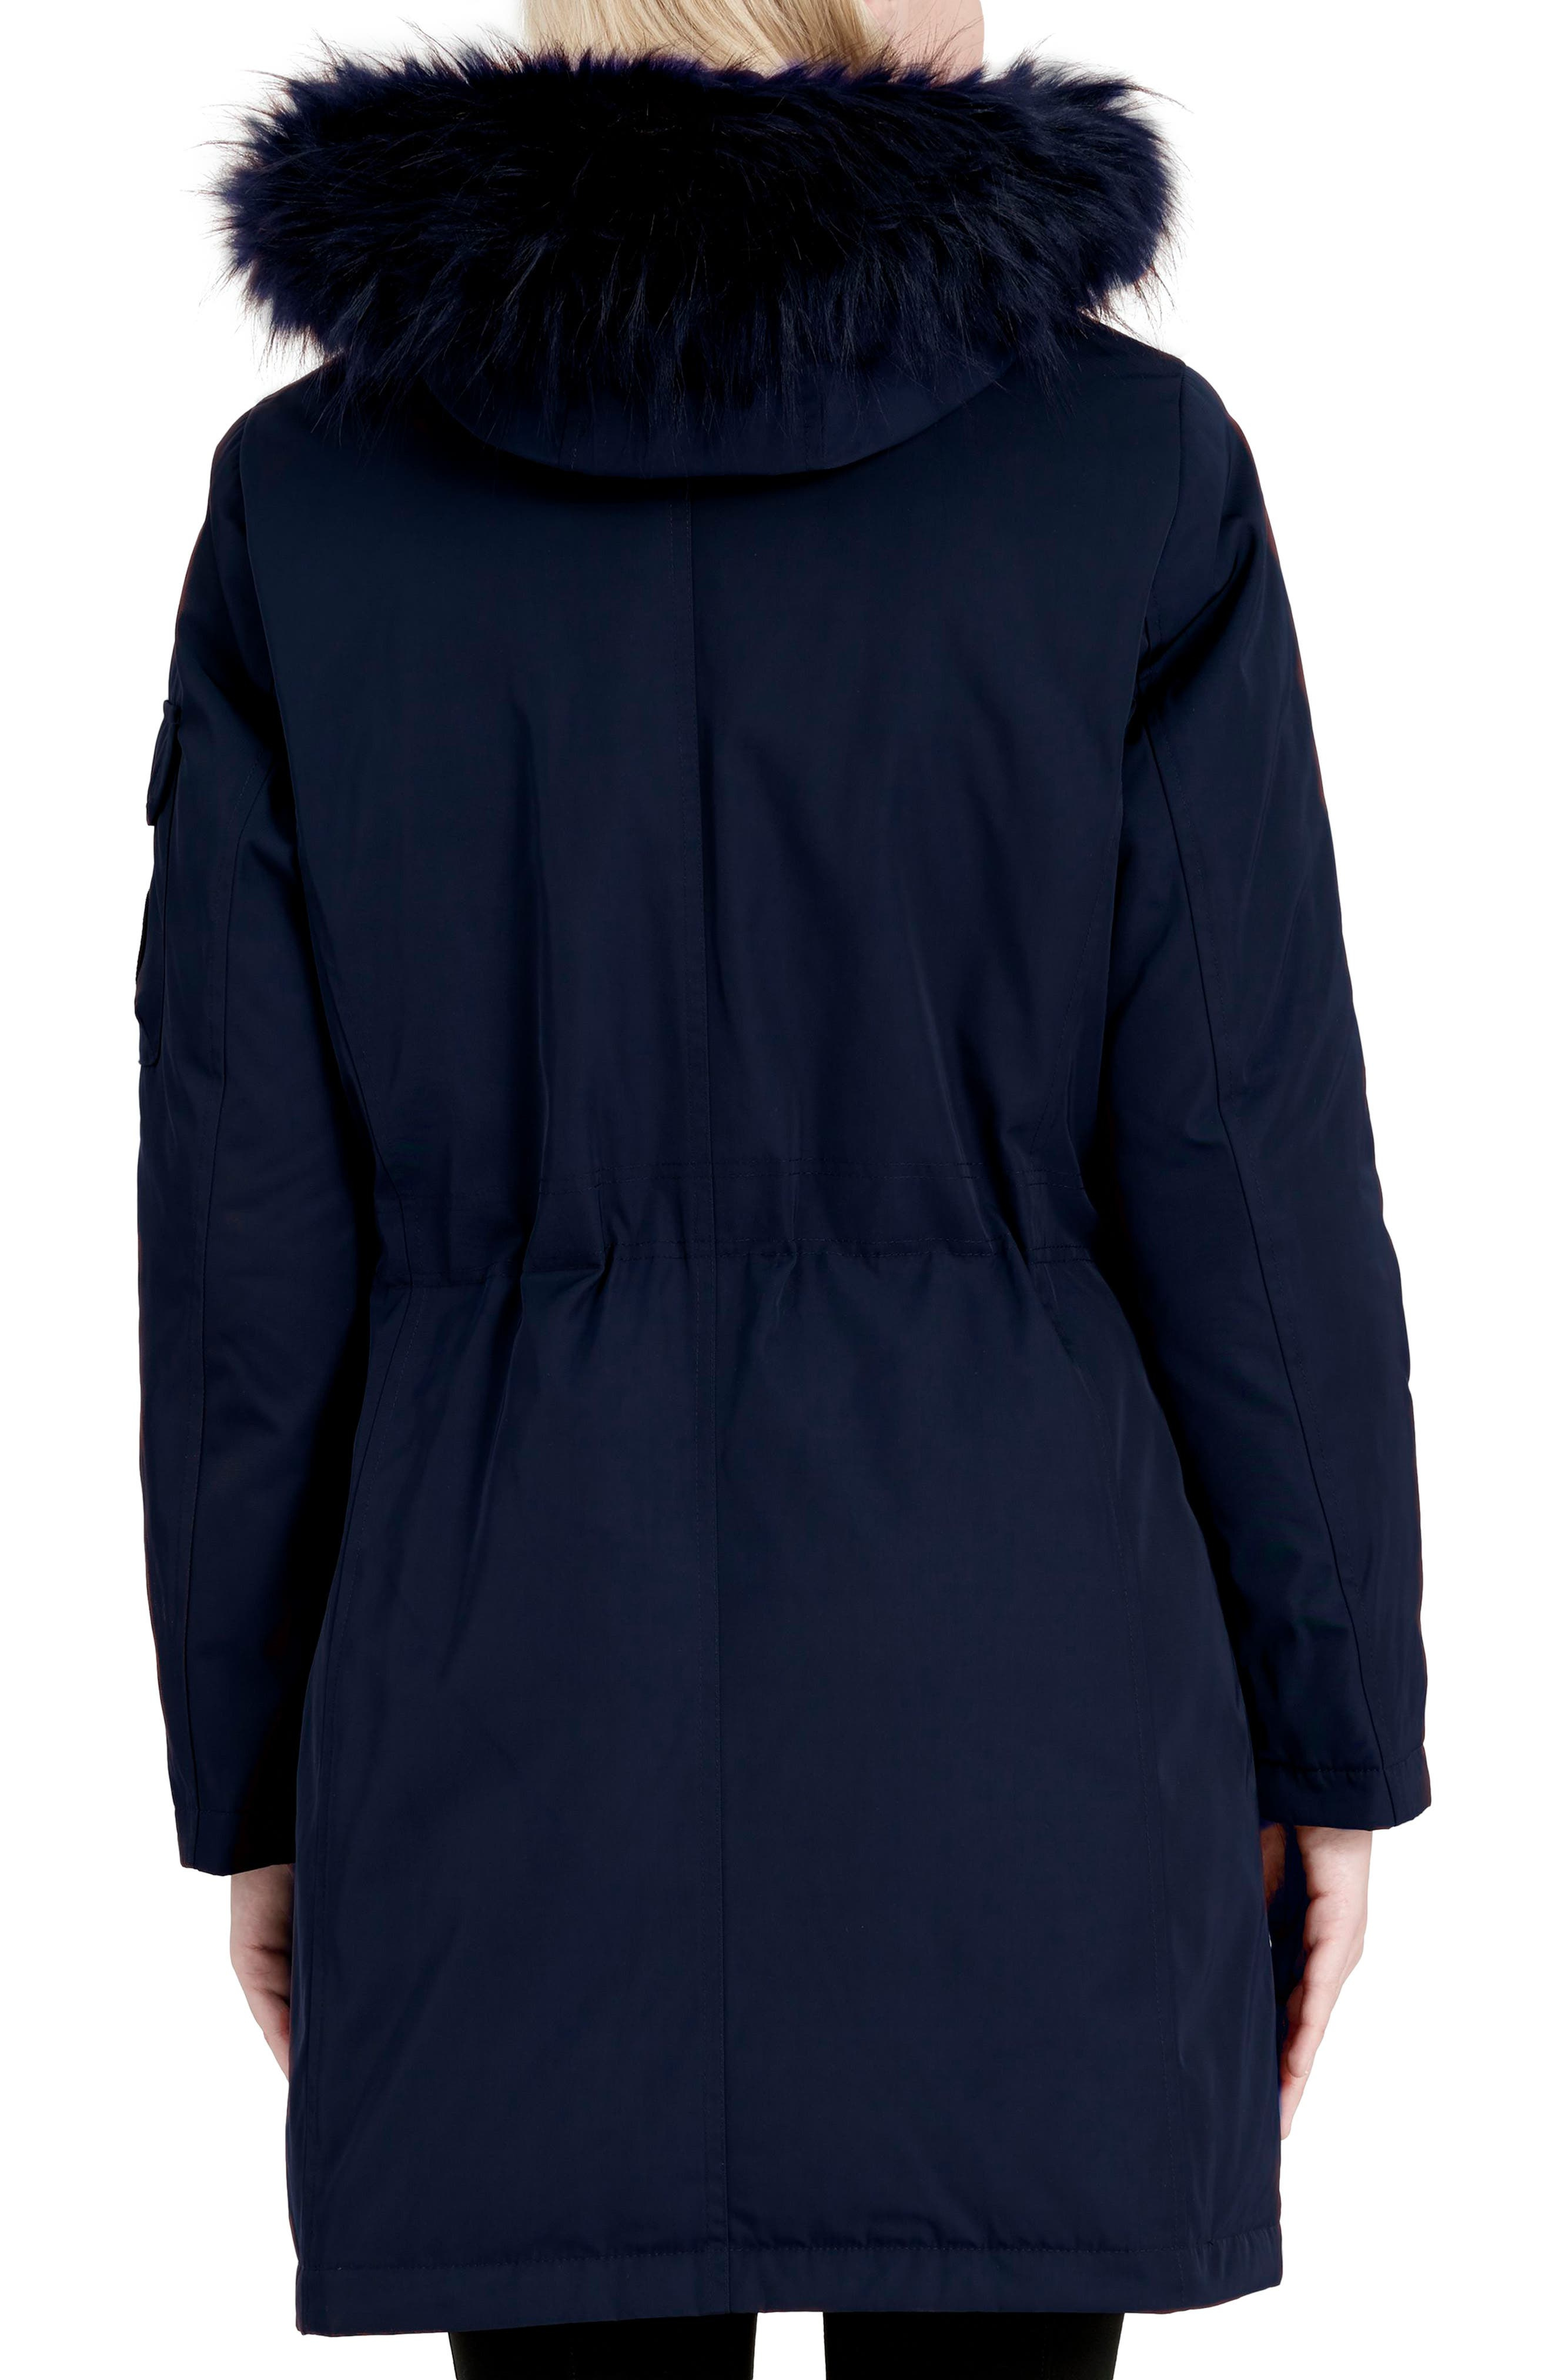 Expedition Hooded Down Parka with Faux Fur Trim,                             Alternate thumbnail 5, color,